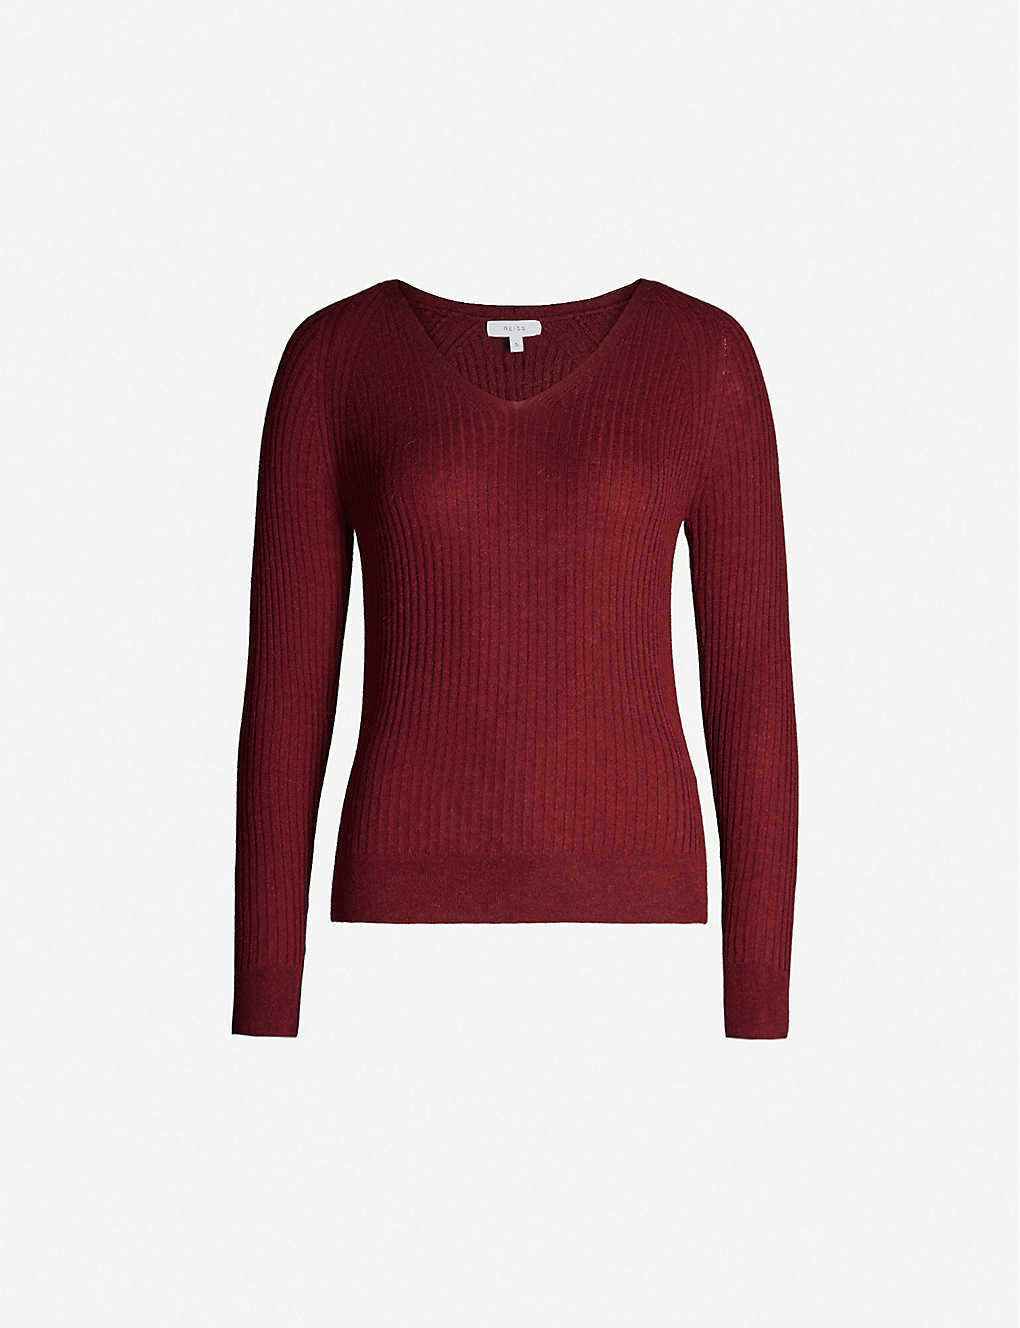 REISS: Elouise V-neck knitted jumper